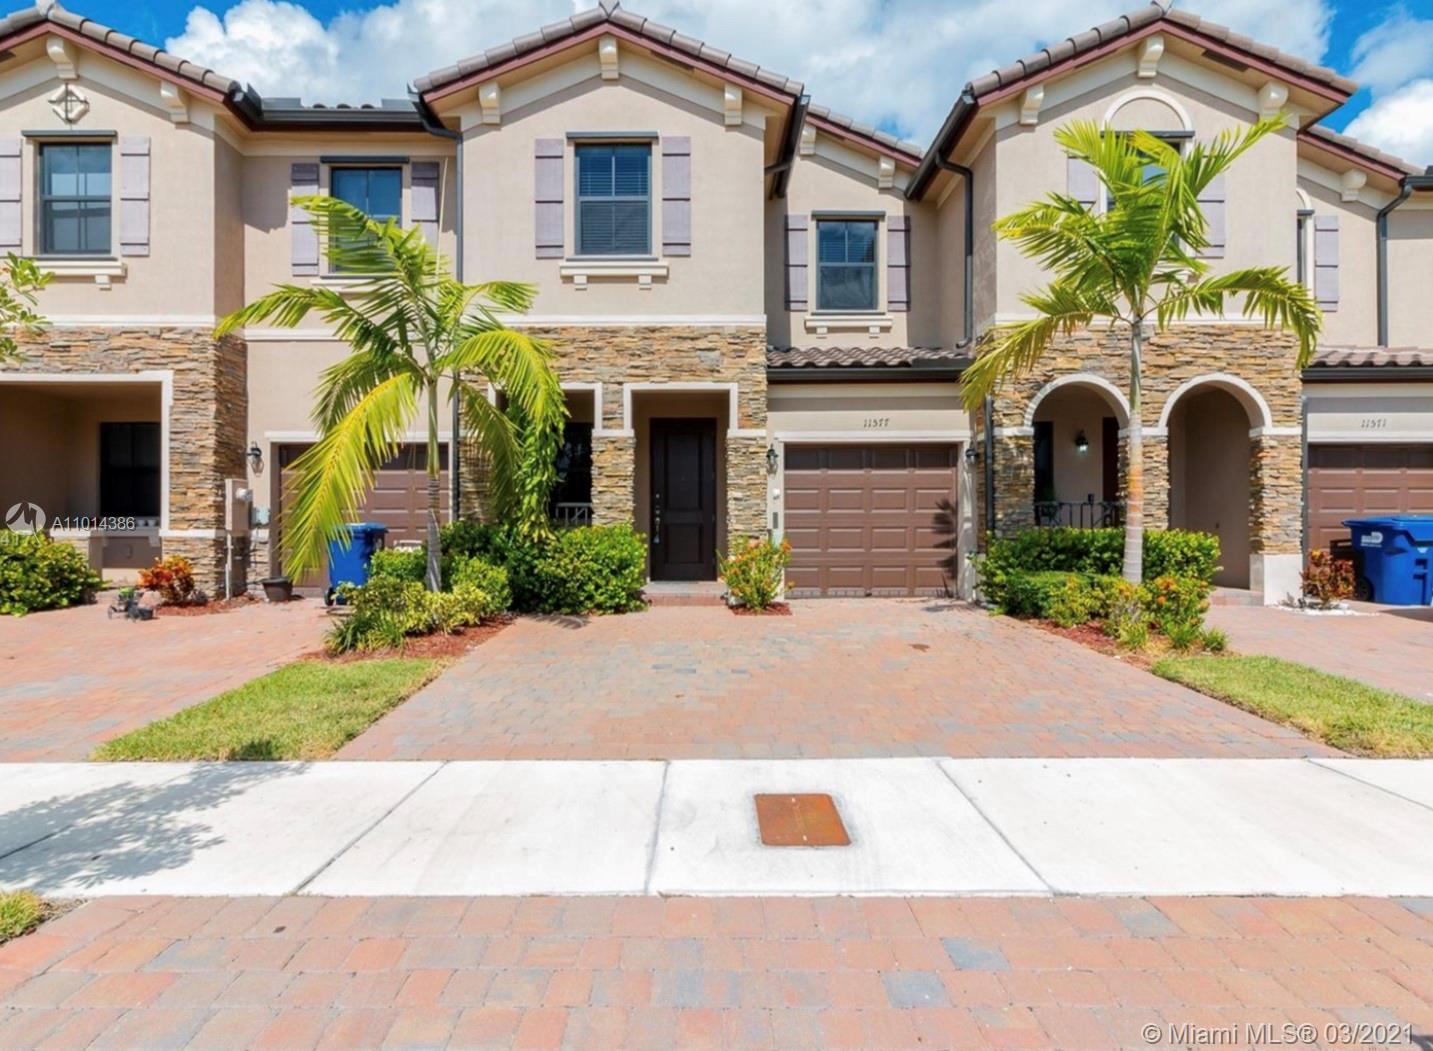 11577 SW 253rd St Property Photo - Homestead, FL real estate listing